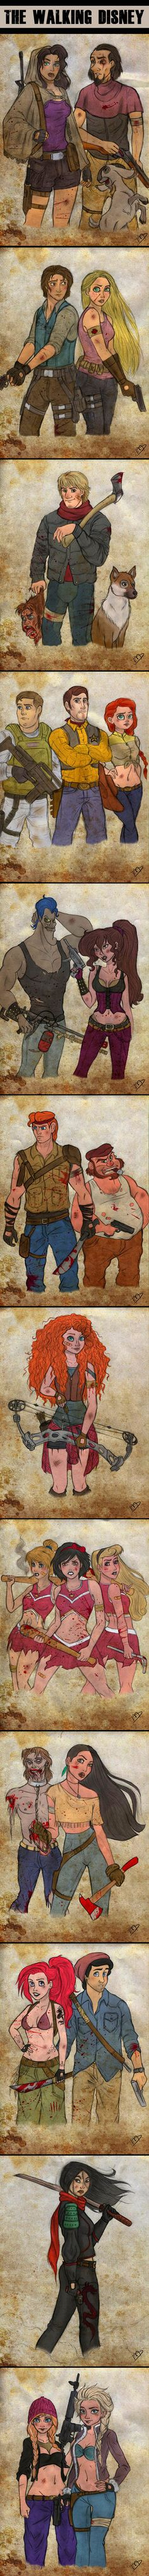 DeviantART user Kasami-Sensei has re-envisioned the sweet and innocent protagonists of several Disney films in the style of zombie hunters (and a zombie) from The Walking Dead. Disney Pixar, Disney Jokes, Funny Disney Memes, Disney Fun, Disney And Dreamworks, Disney Magic, Disney Animation, Disney Characters, Zombie Disney